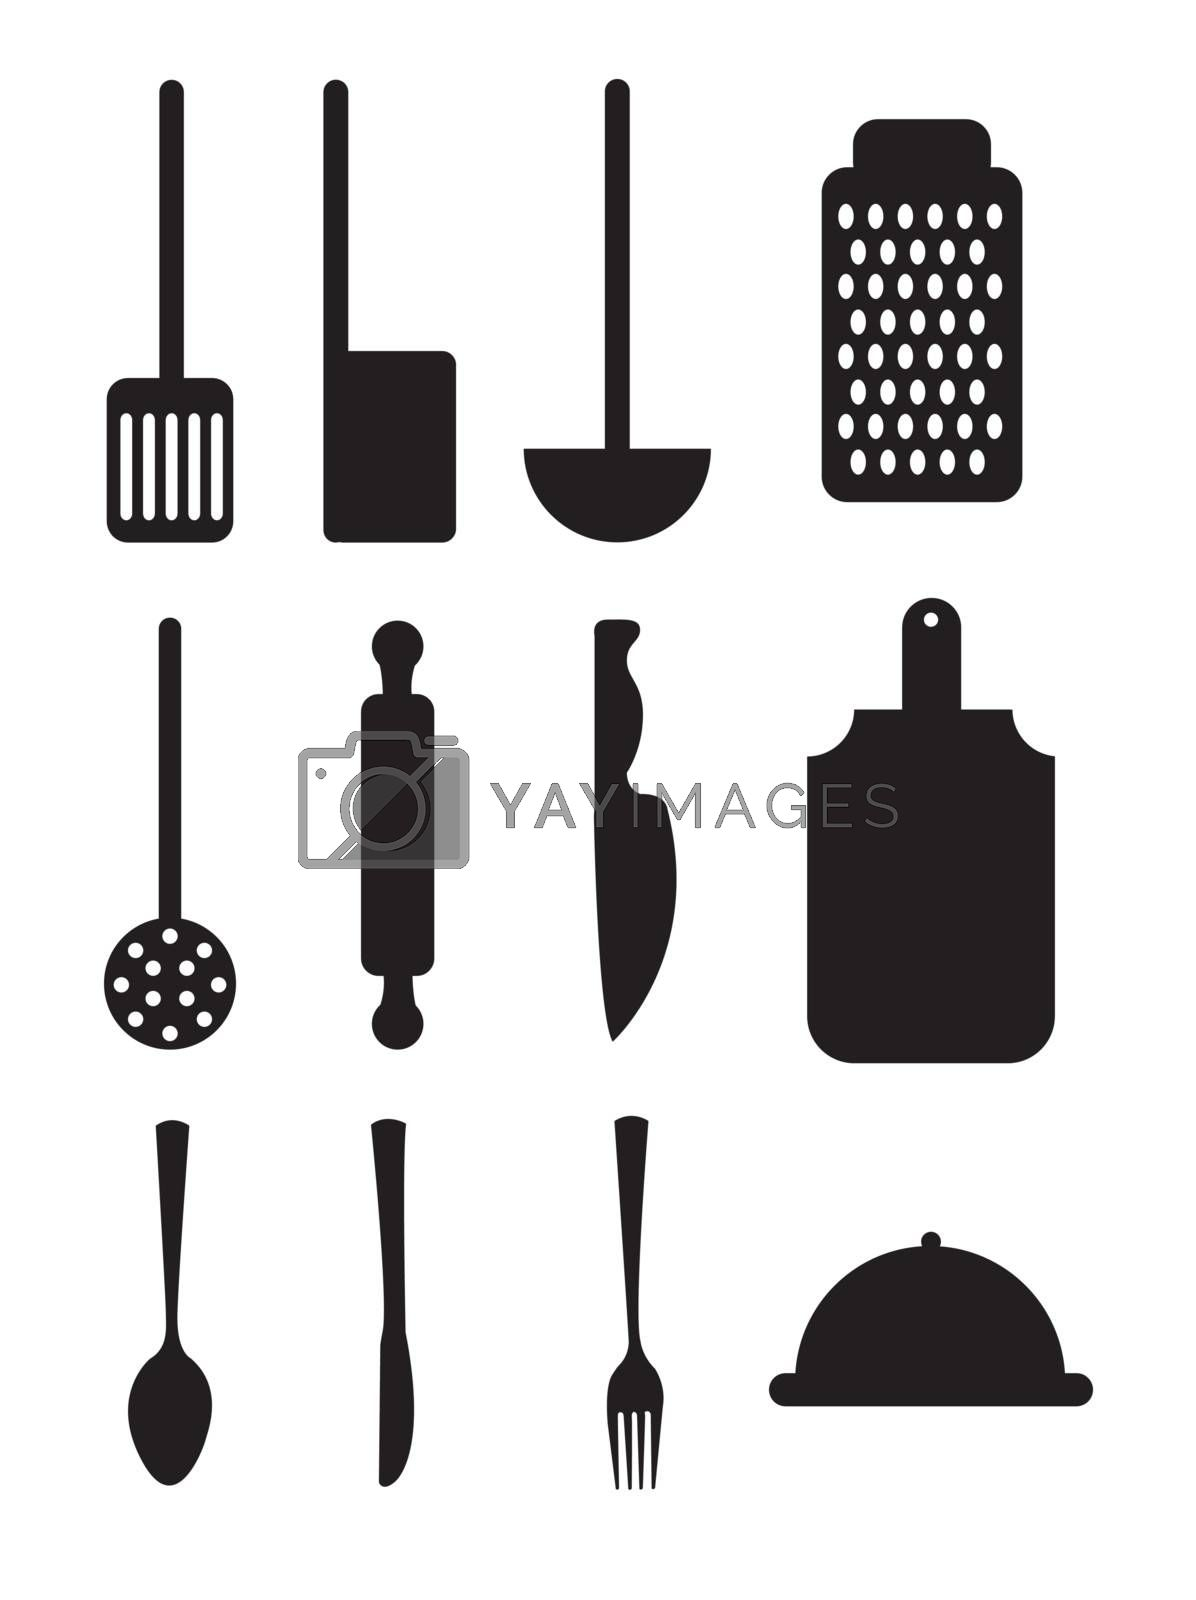 Cutlery icons by yupiramos